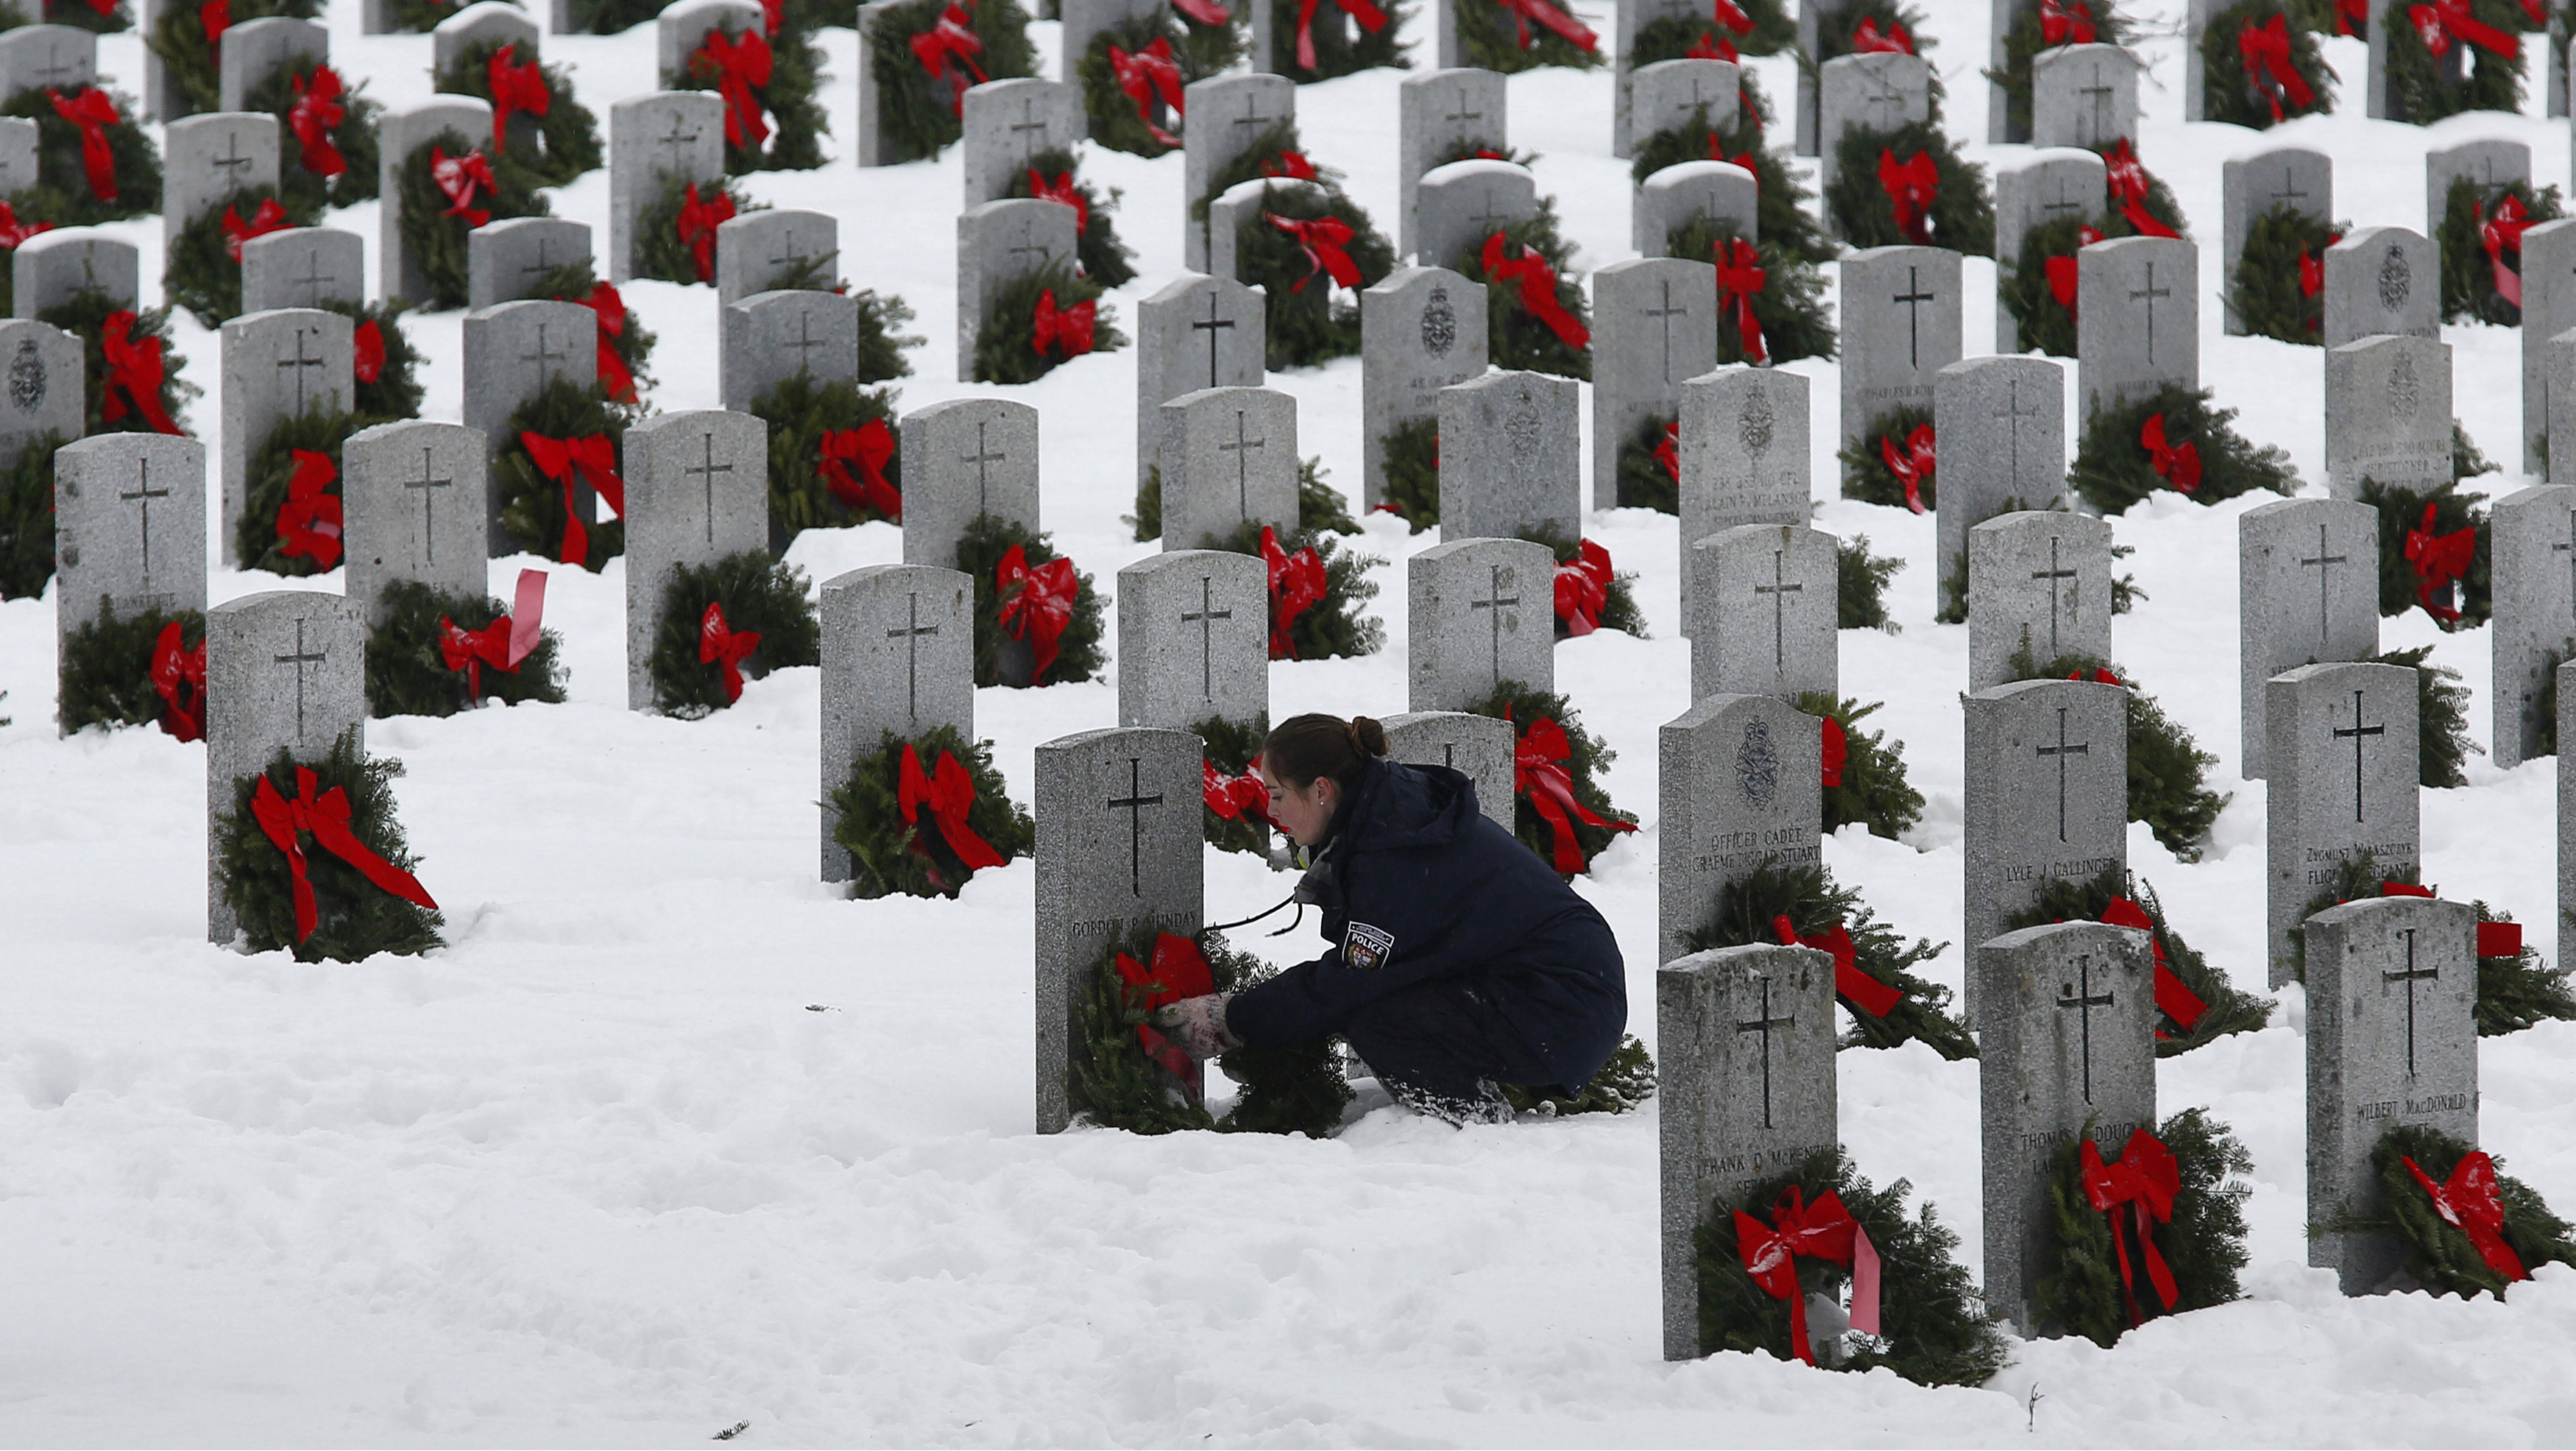 wreaths at cemetary